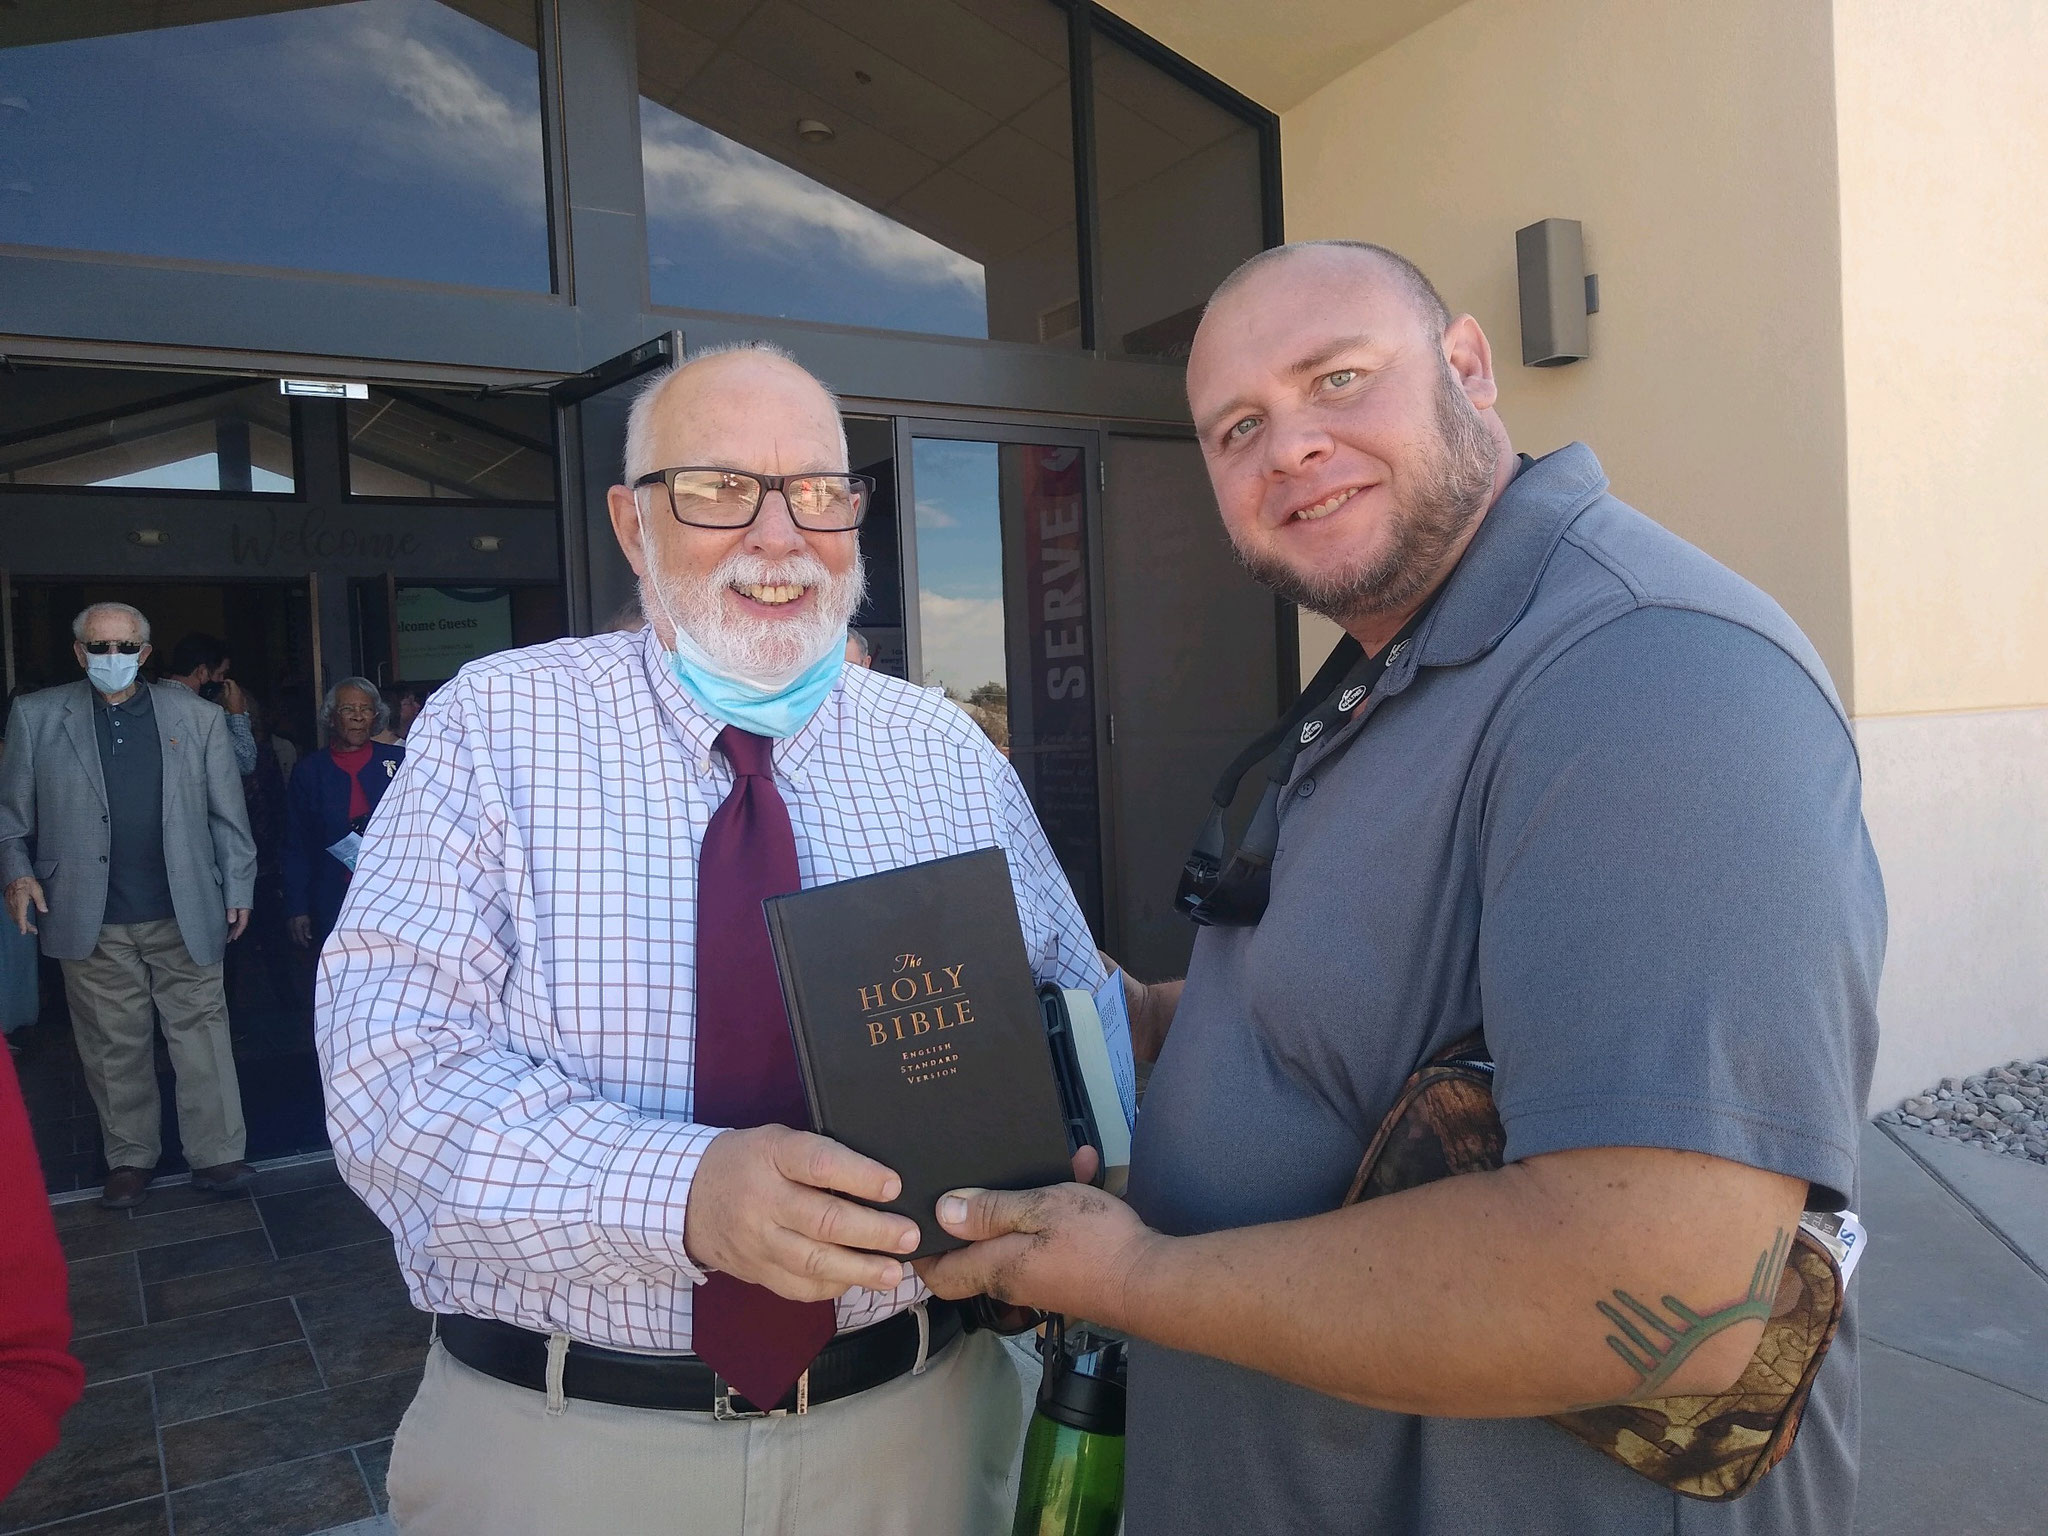 David Nohe is a Gideon. He has provided us with complete and New Testament ESV Bibles.